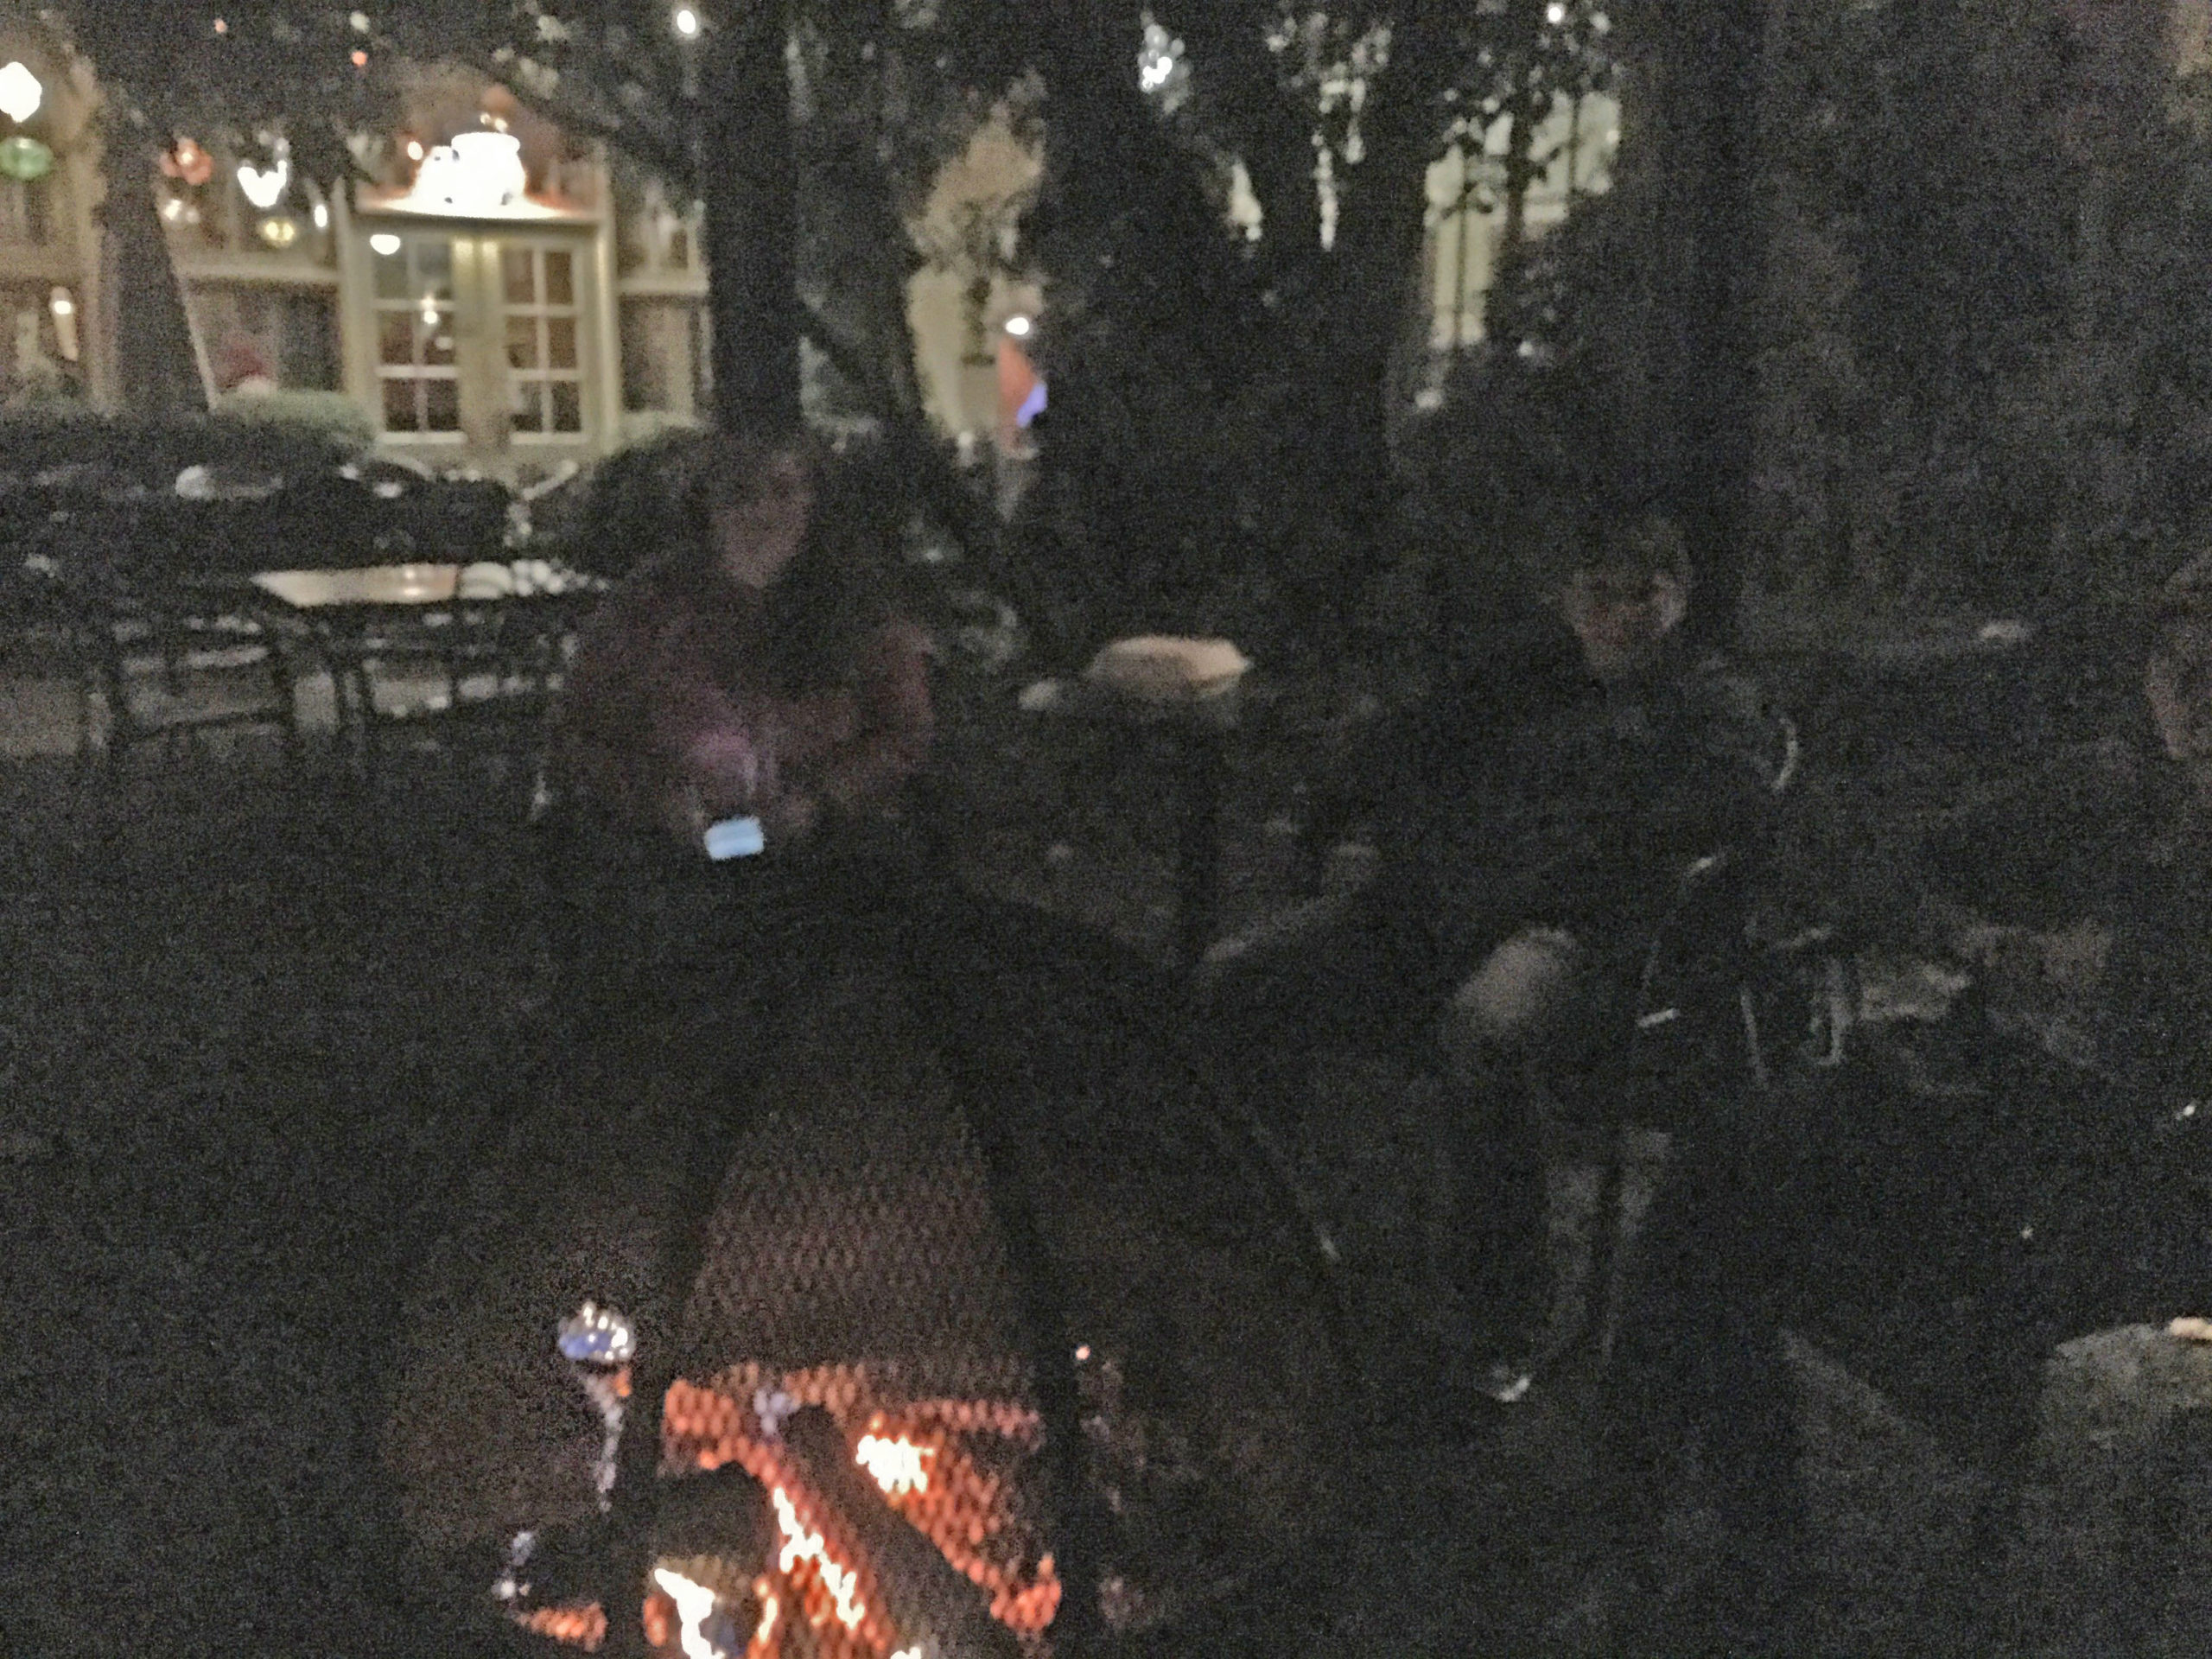 discussing emotions and dogs around a fire